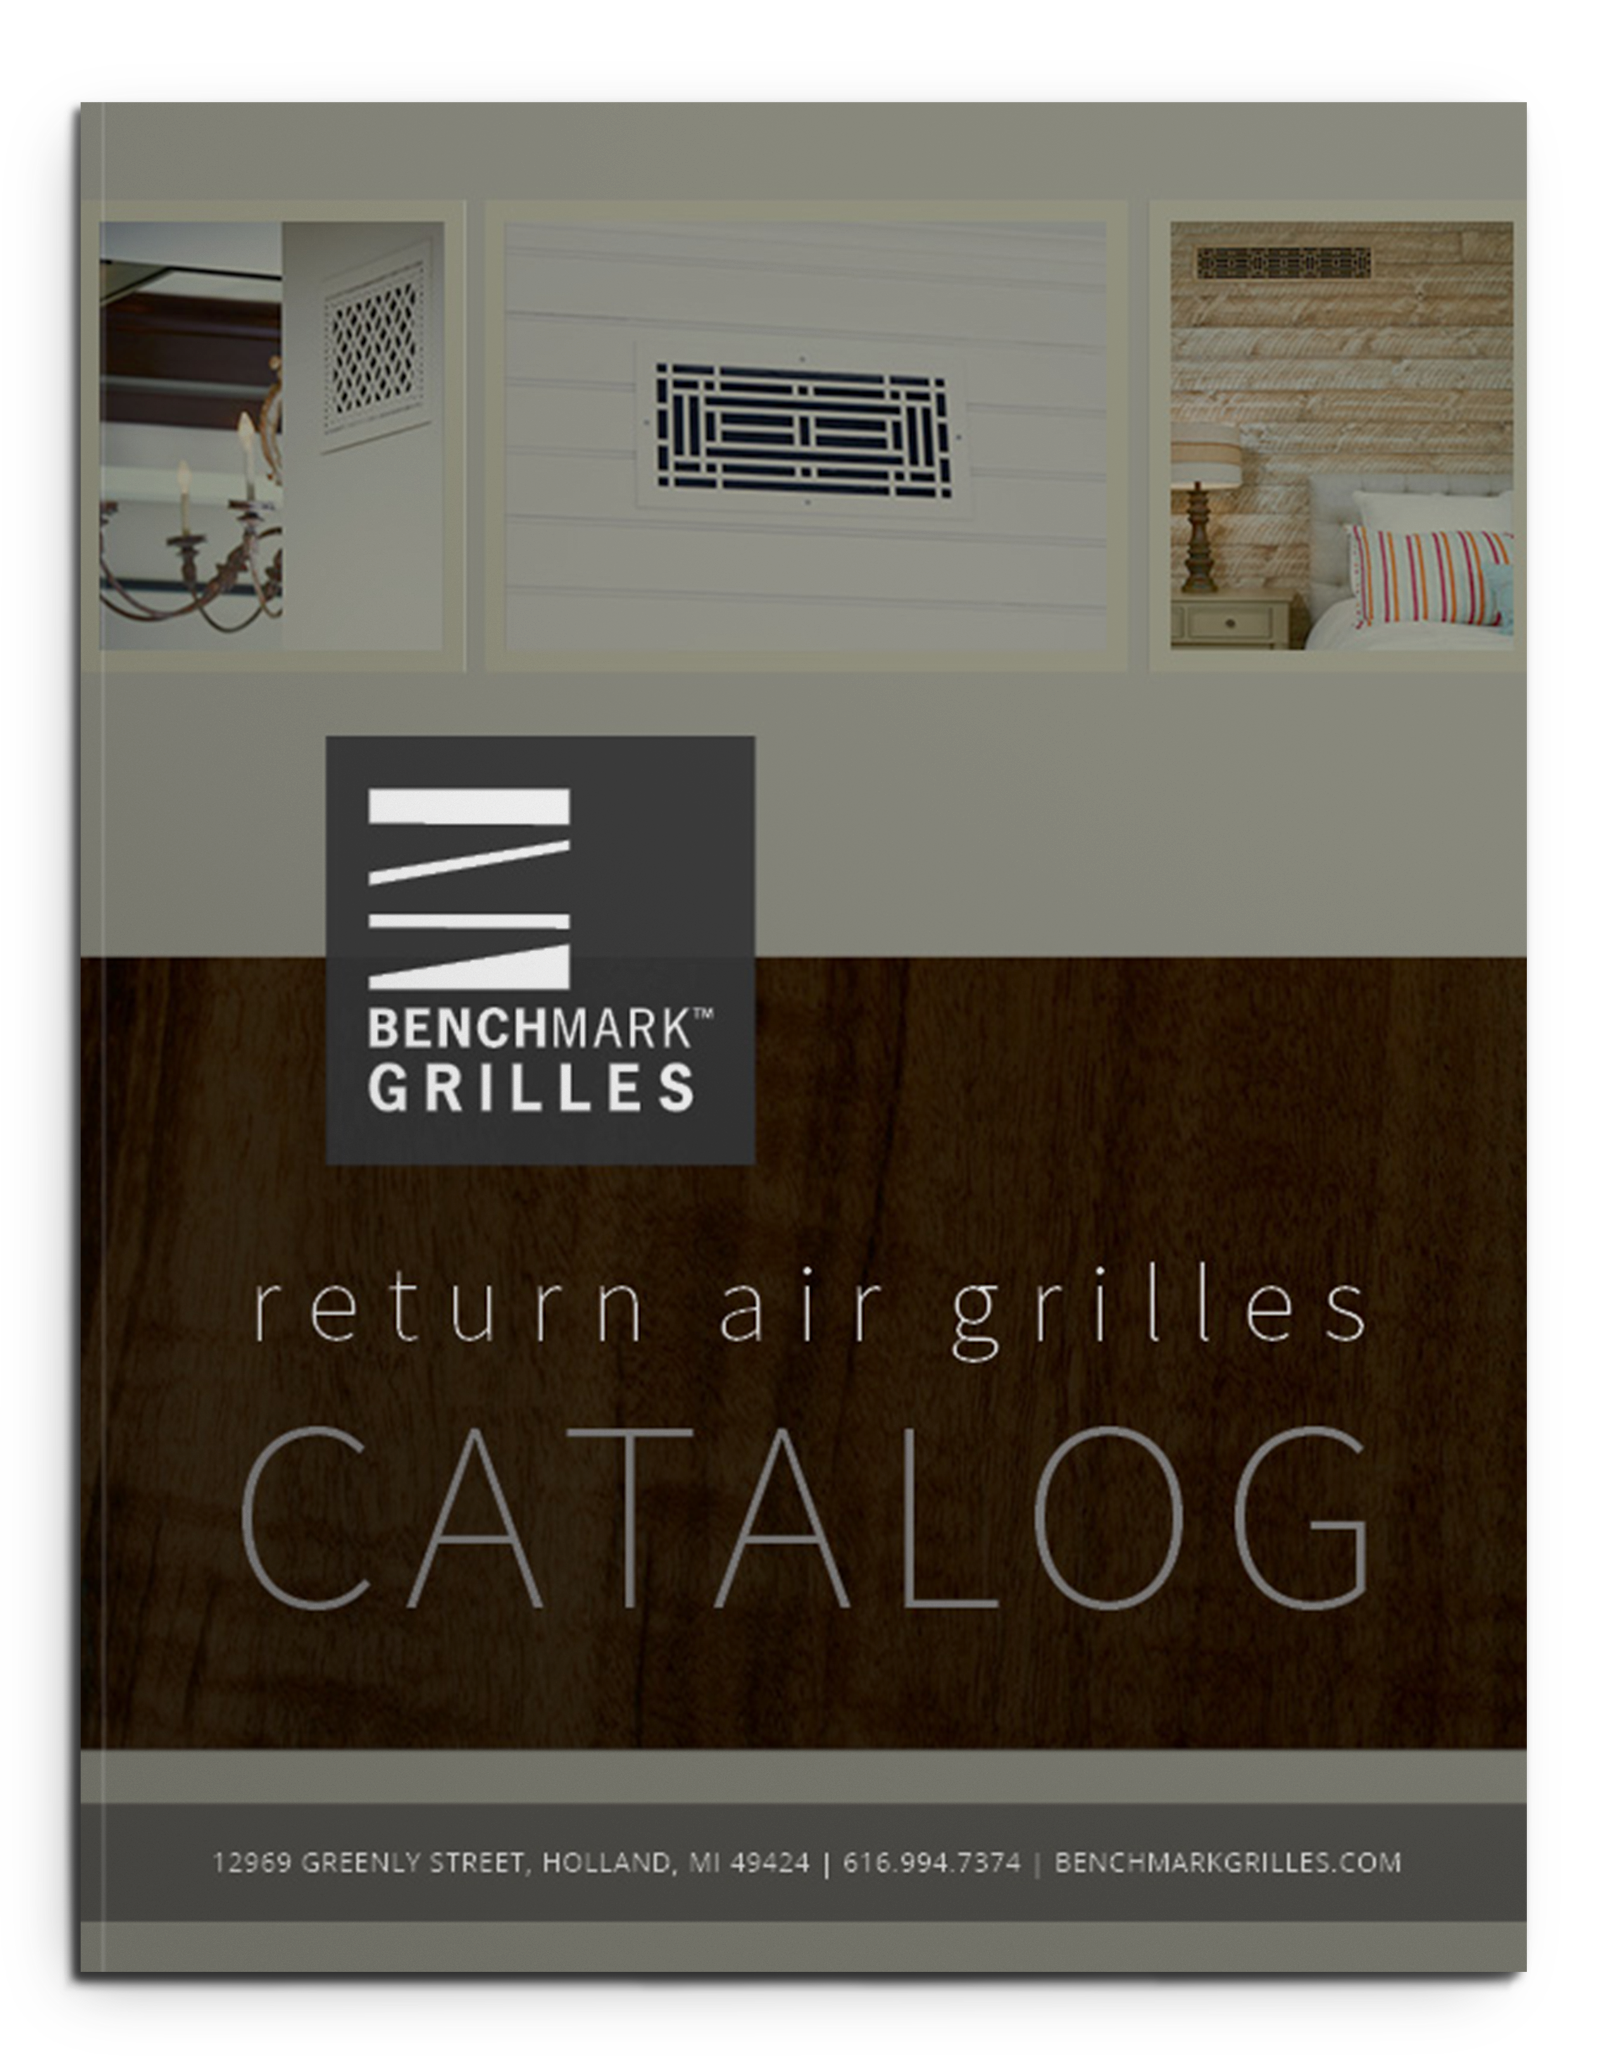 grilles catalog cover